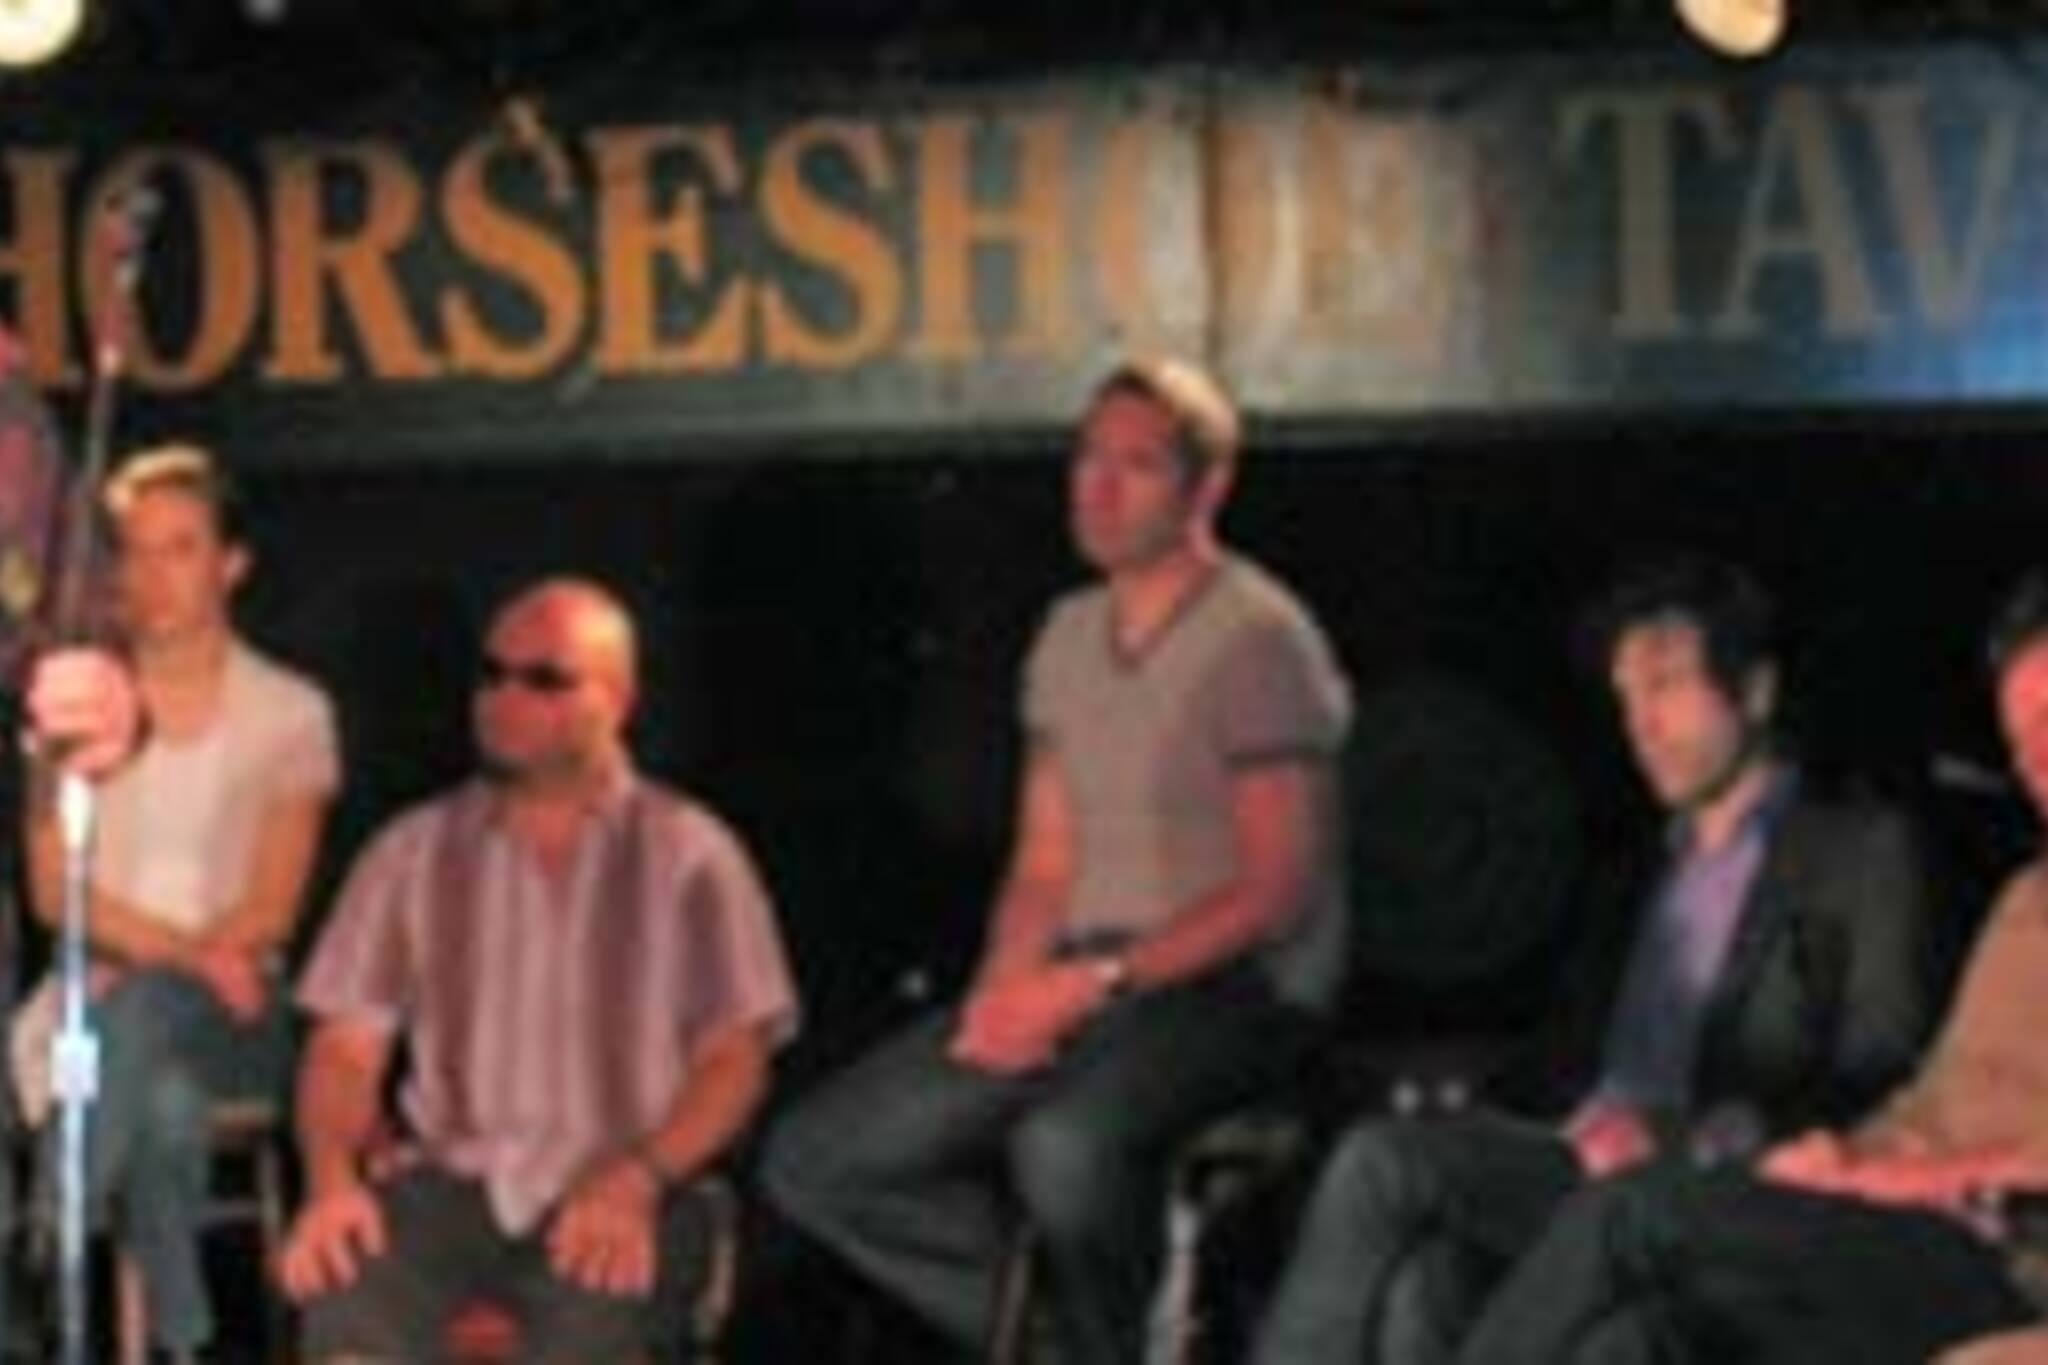 Steven Page and other members of the CMCC at the Horseshoe